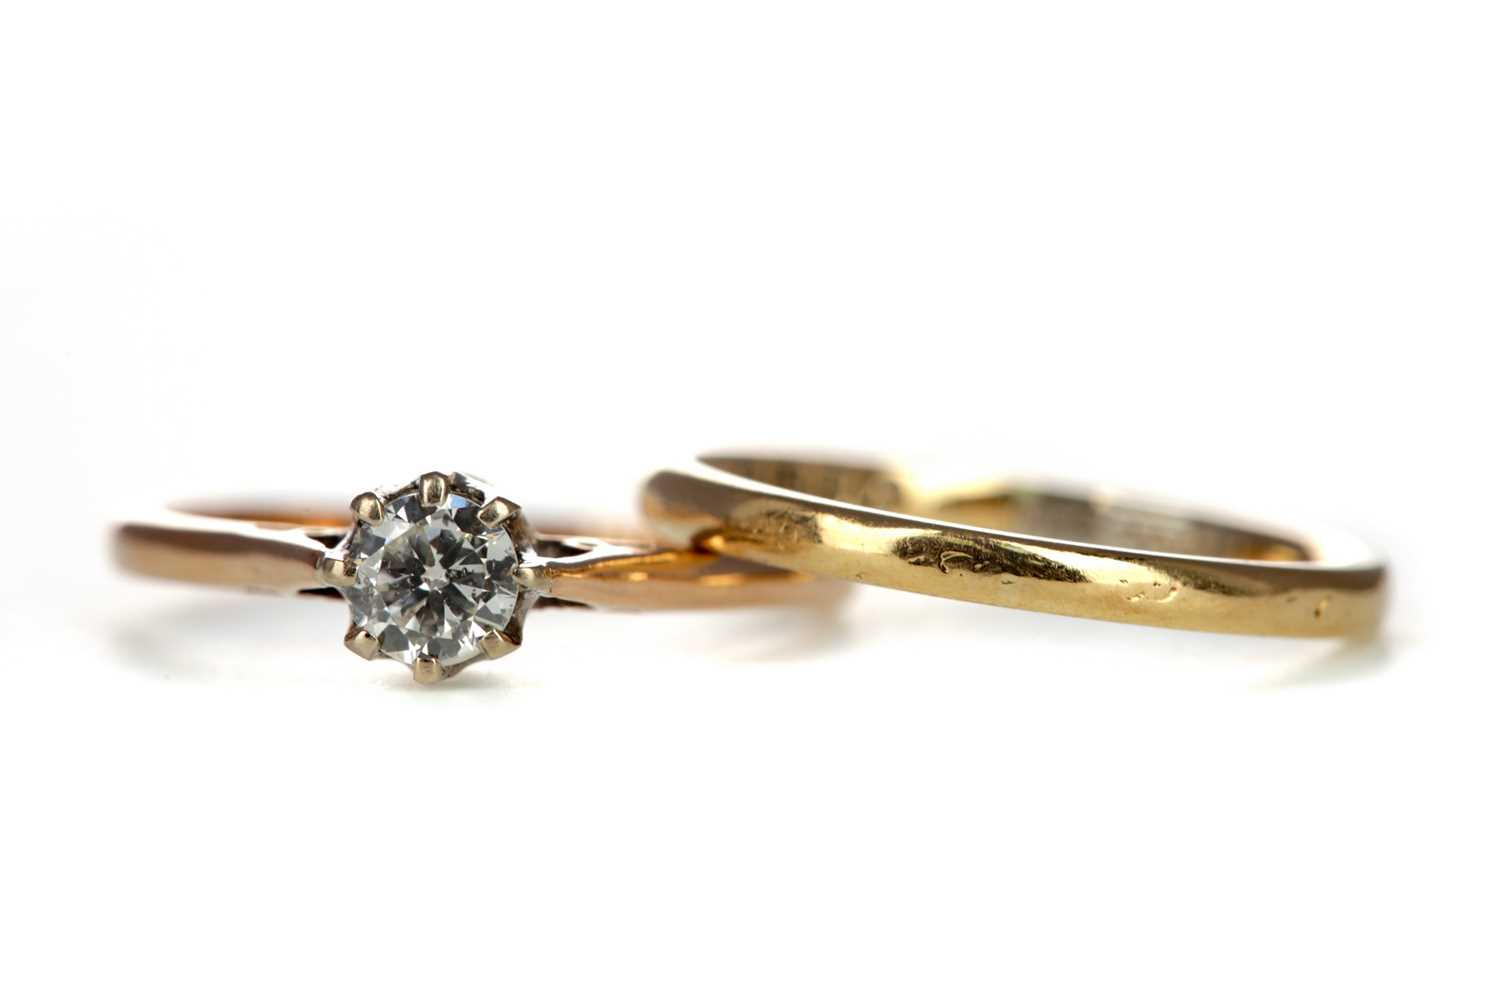 Lot 330 - A DIAMOND RING AND A WEDDING BAND